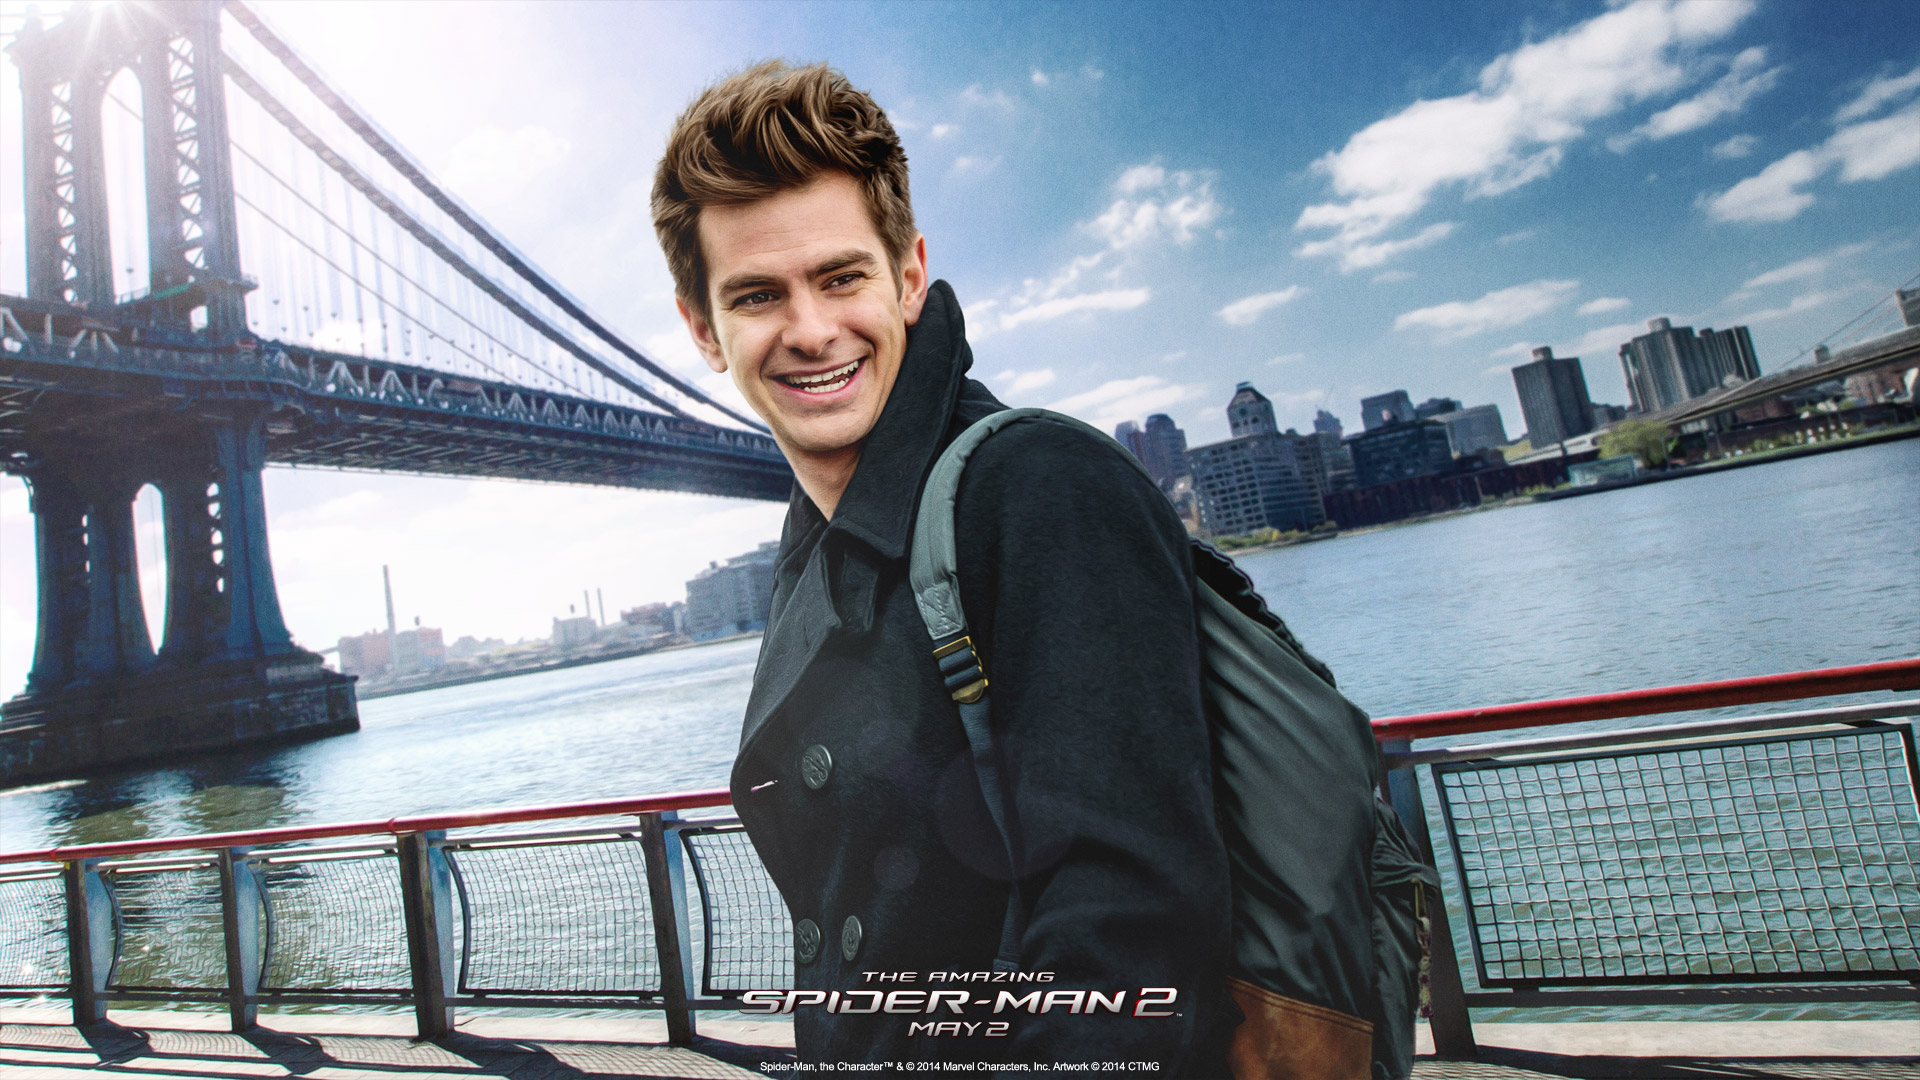 Andrew Garfield Wallpaper Iphone The Amazing Spider Man 2 Full Hd Wallpaper And Background